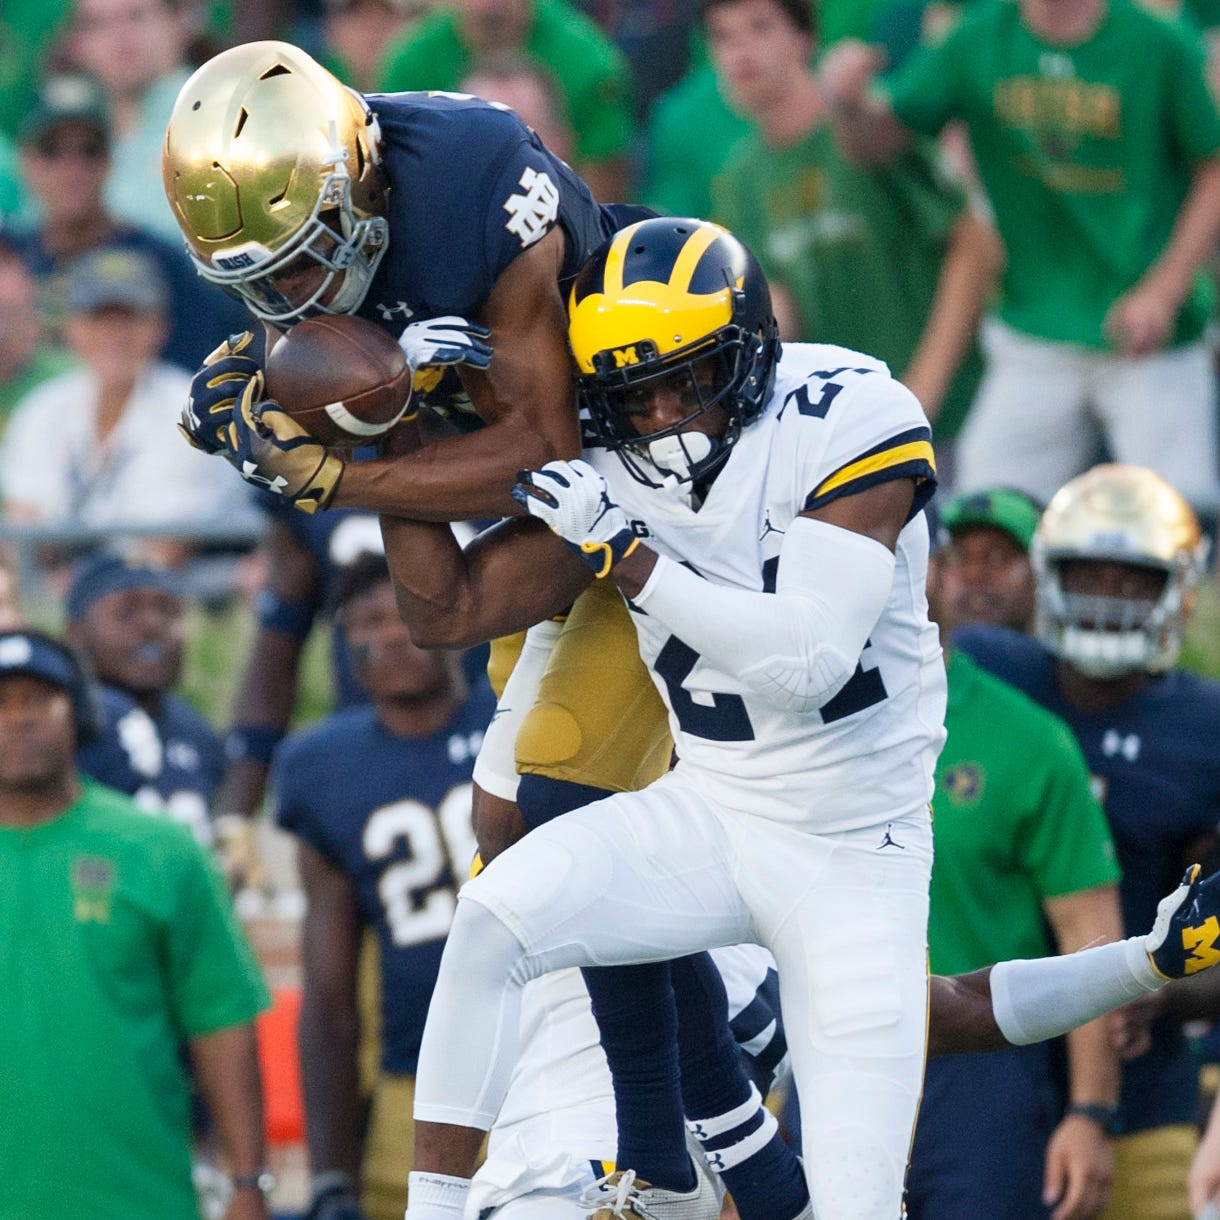 Michigan AD Warde Manuel: There's 'interest' in maintaining Notre Dame series